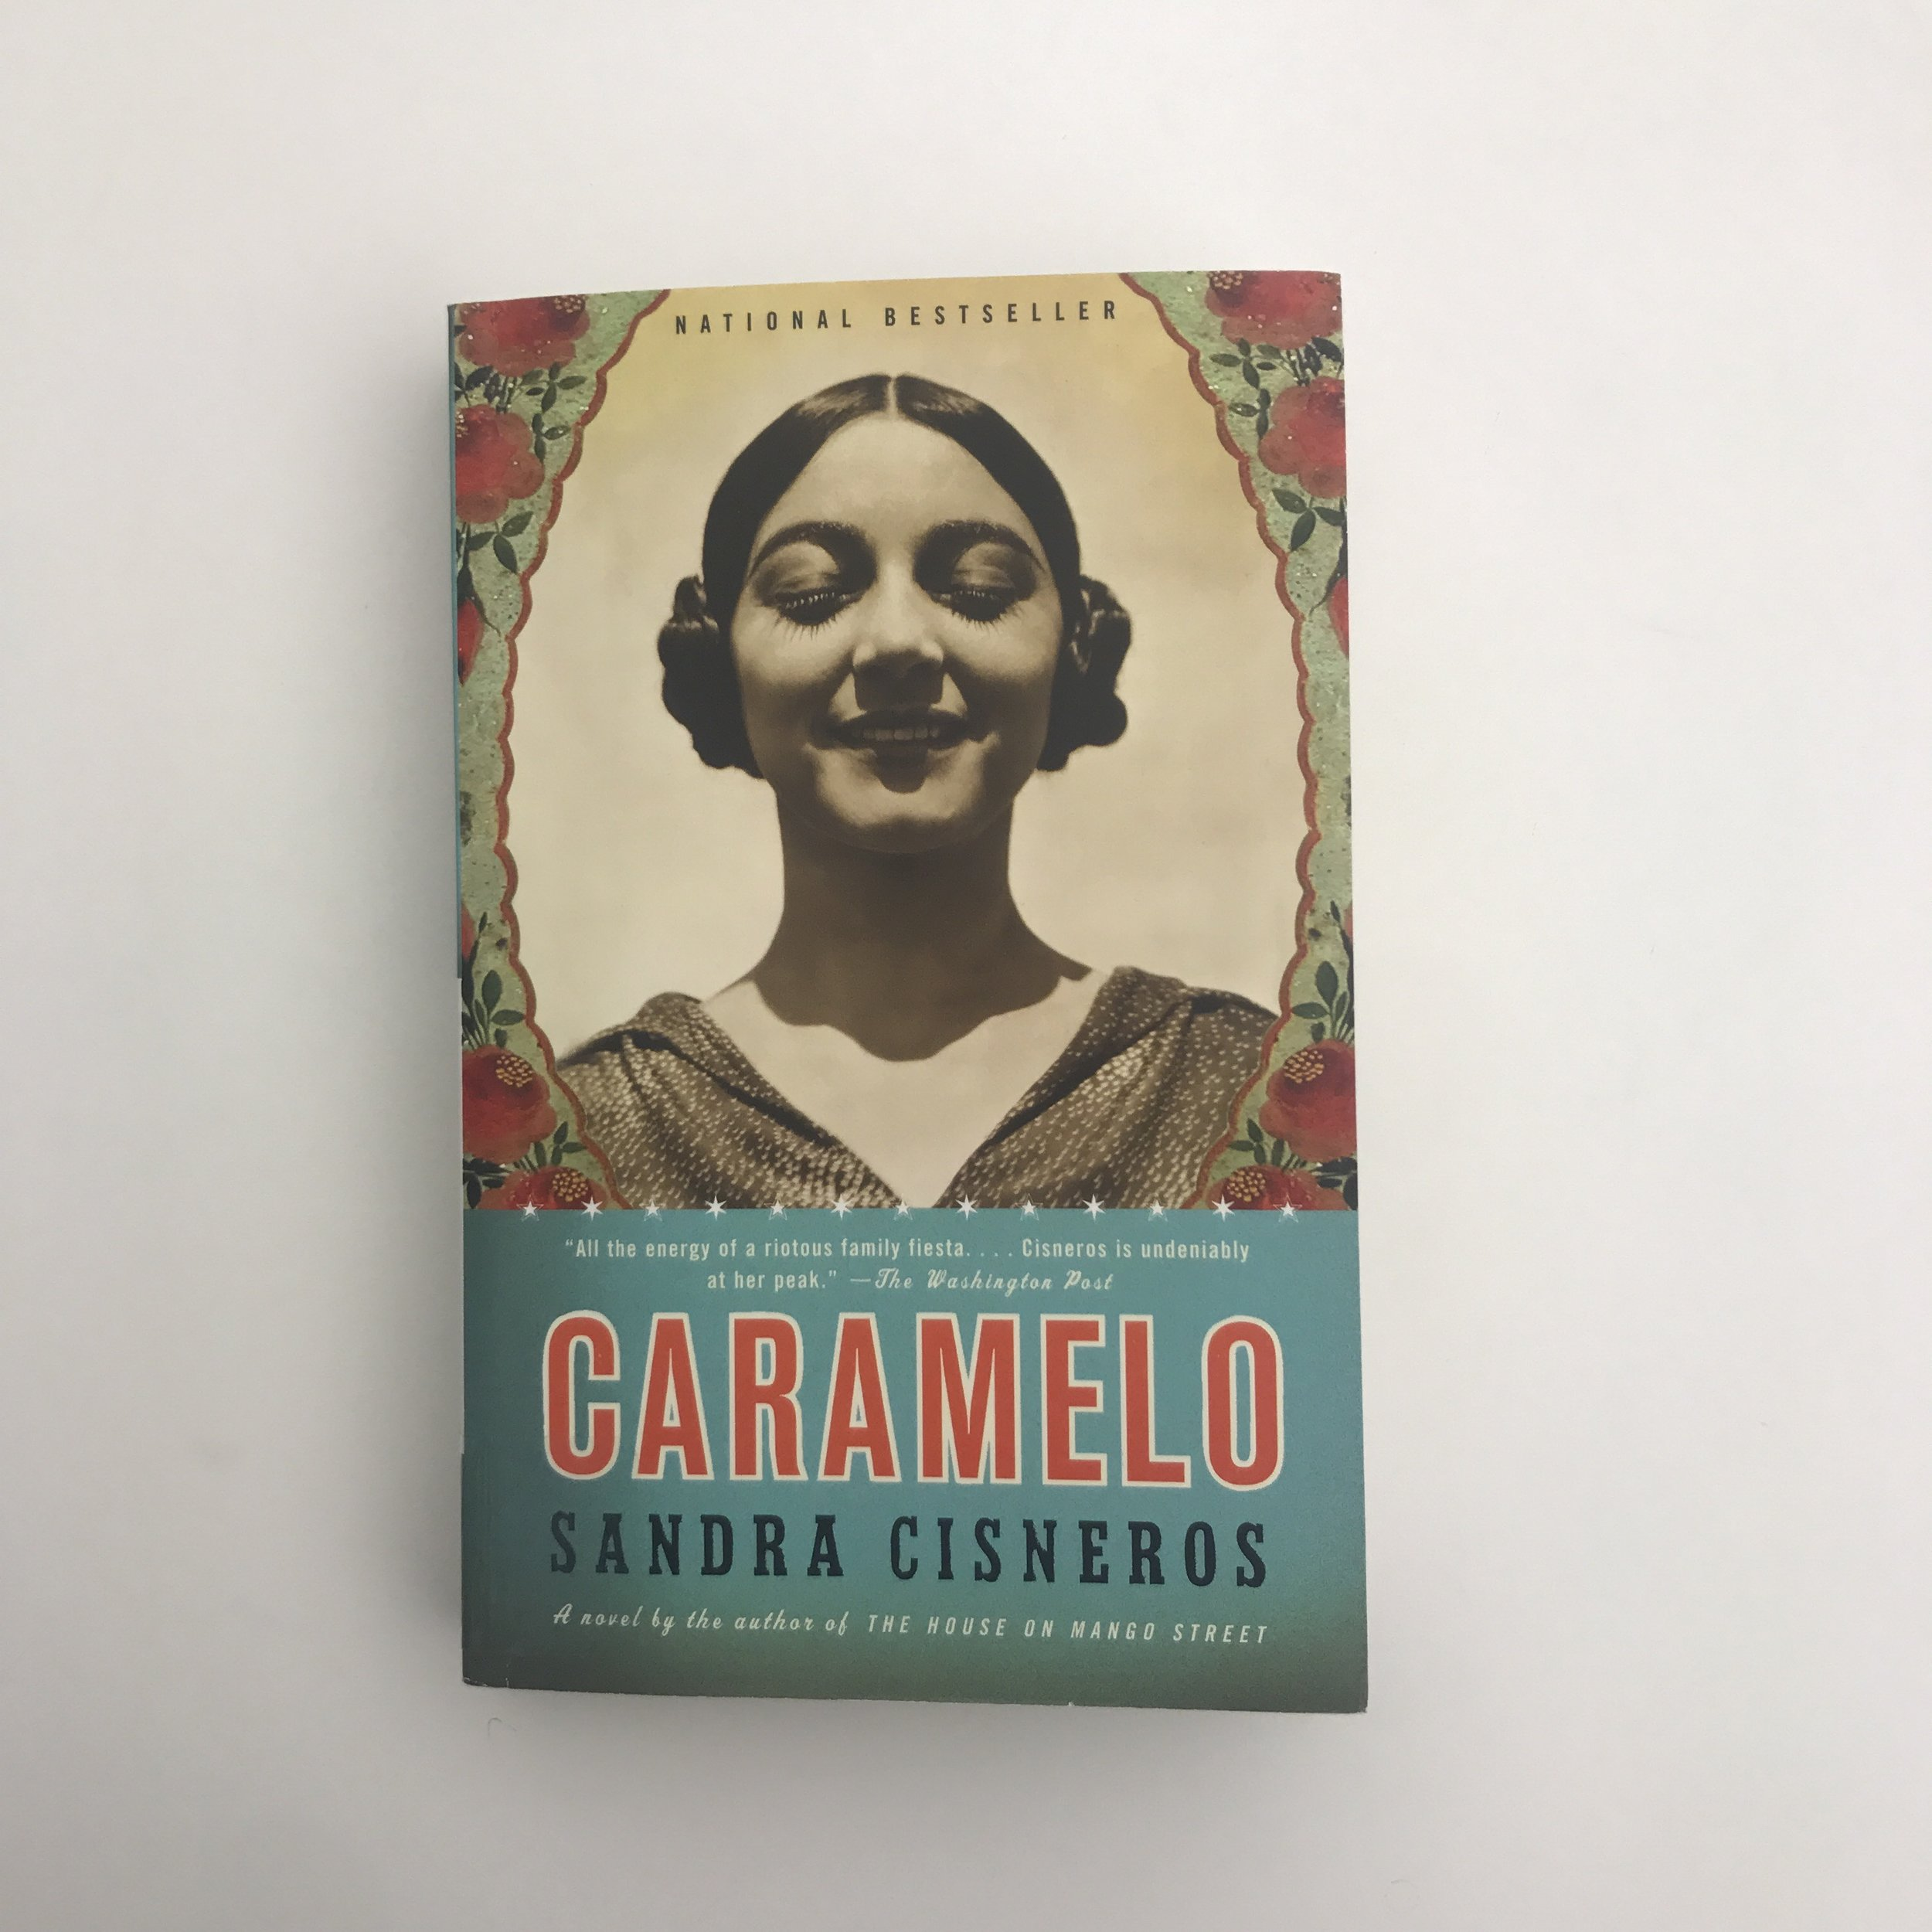 Collection Development:  Caramelo by Sandra Cisneros